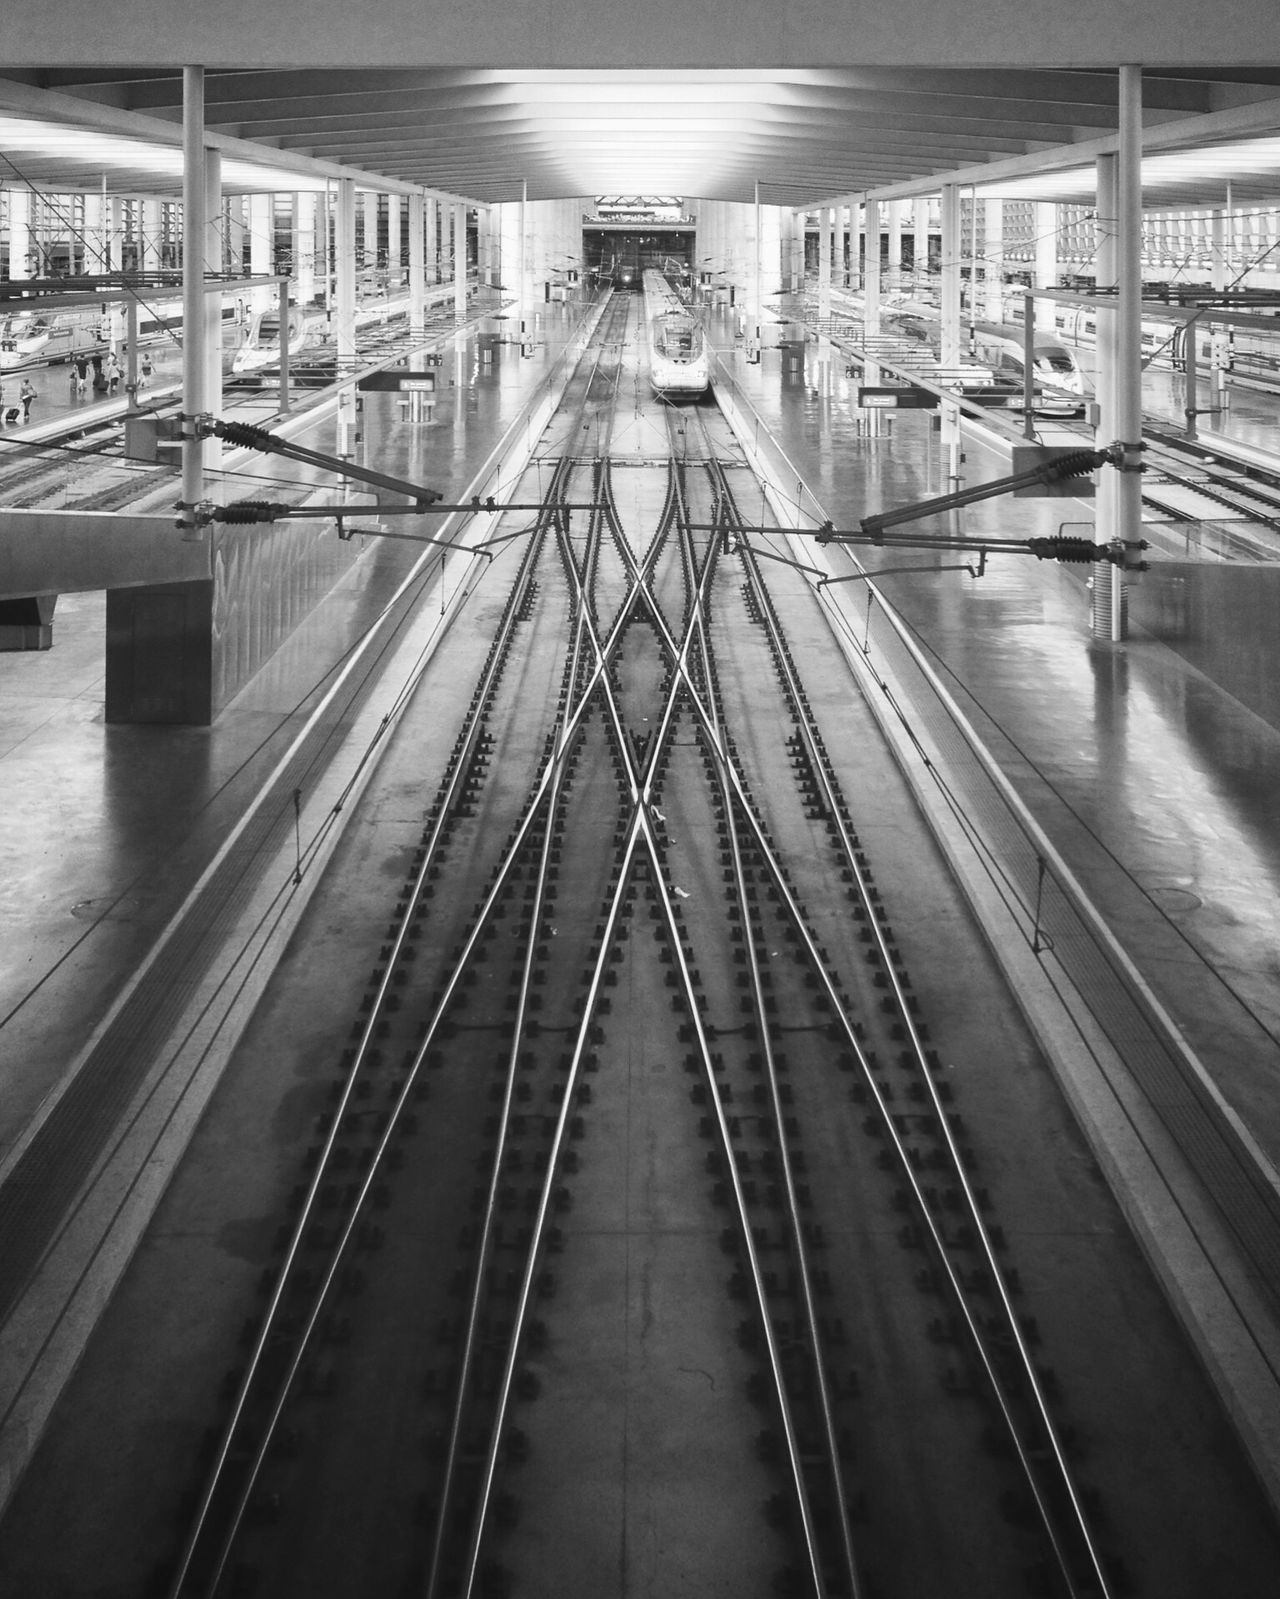 - Weaving paths. Weave Path Railway Train Train Station Atocha Madrid Transportation Architecture Public Transportation Blackandwhite Bnw EyeEm Best Shots - Black + White